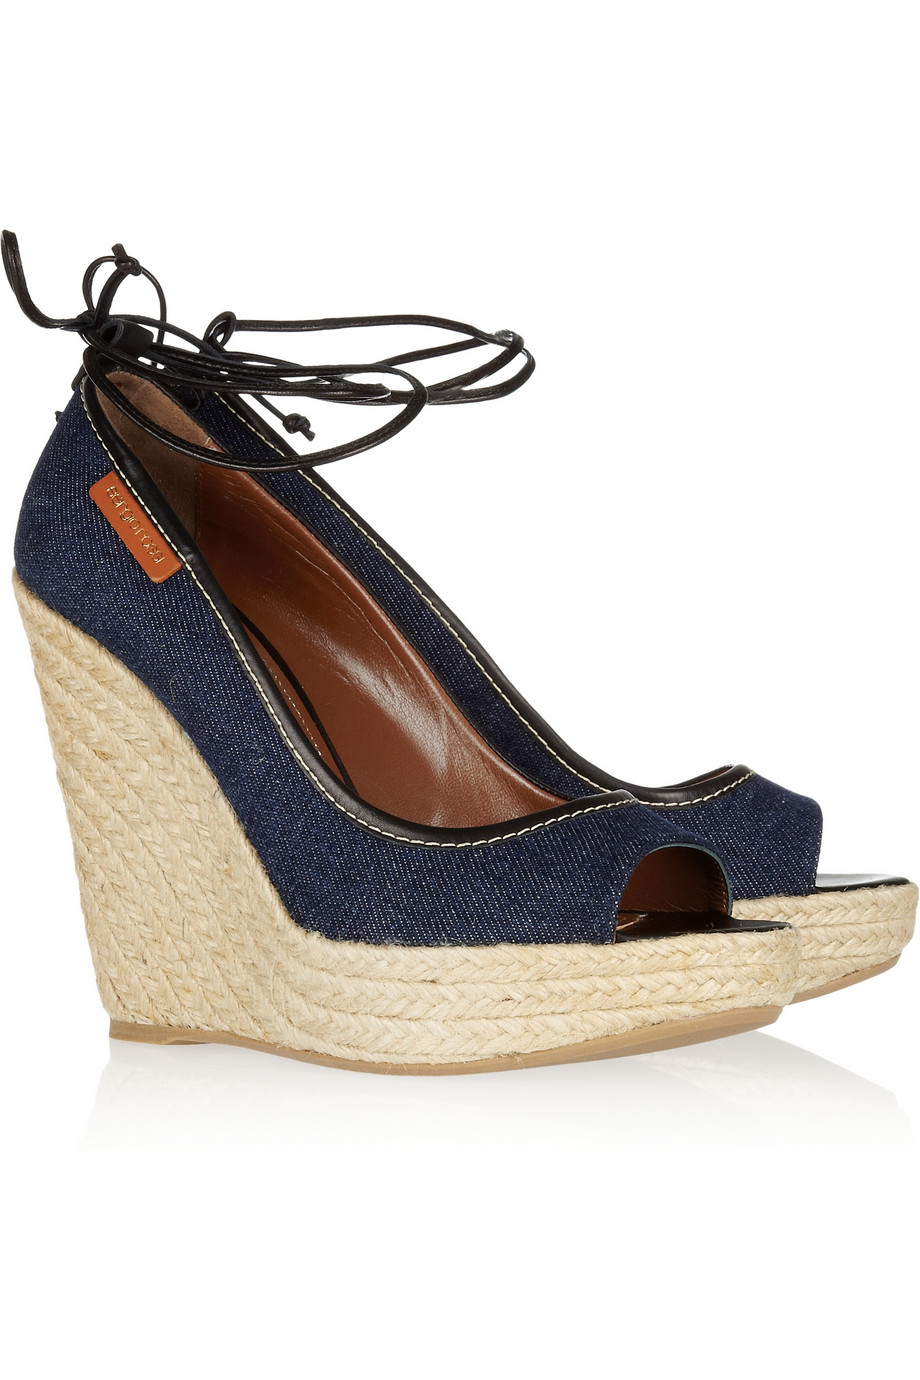 Sergio Rossi Denim Wedge Sandals In Navy Blue Lyst